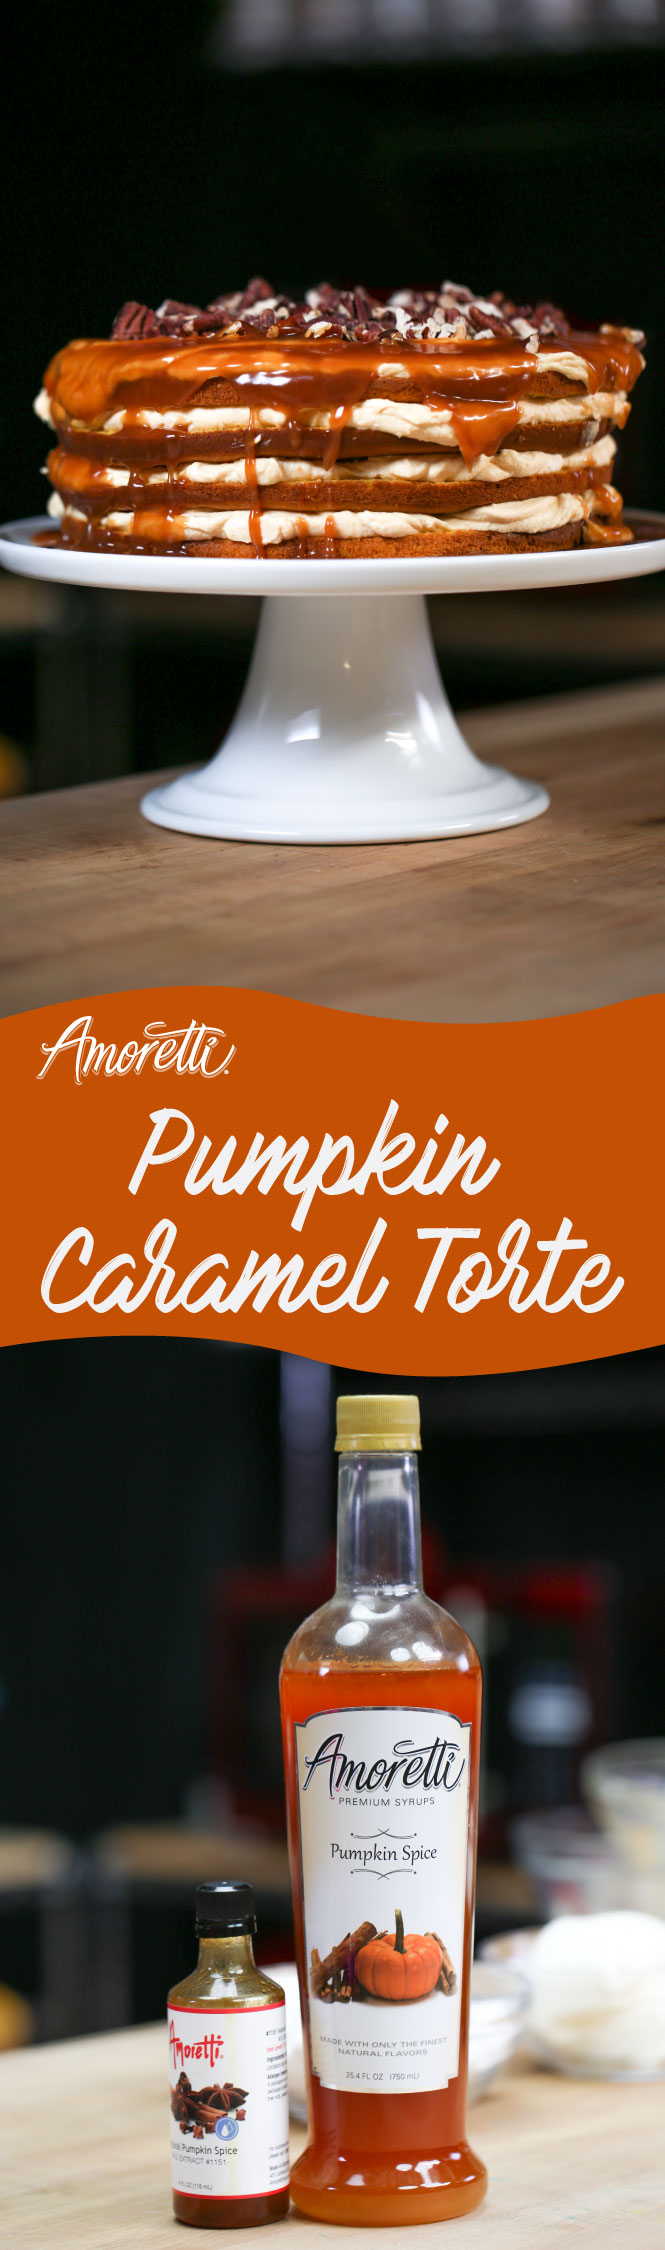 Caramel and pumpkin are a match made in heaven!